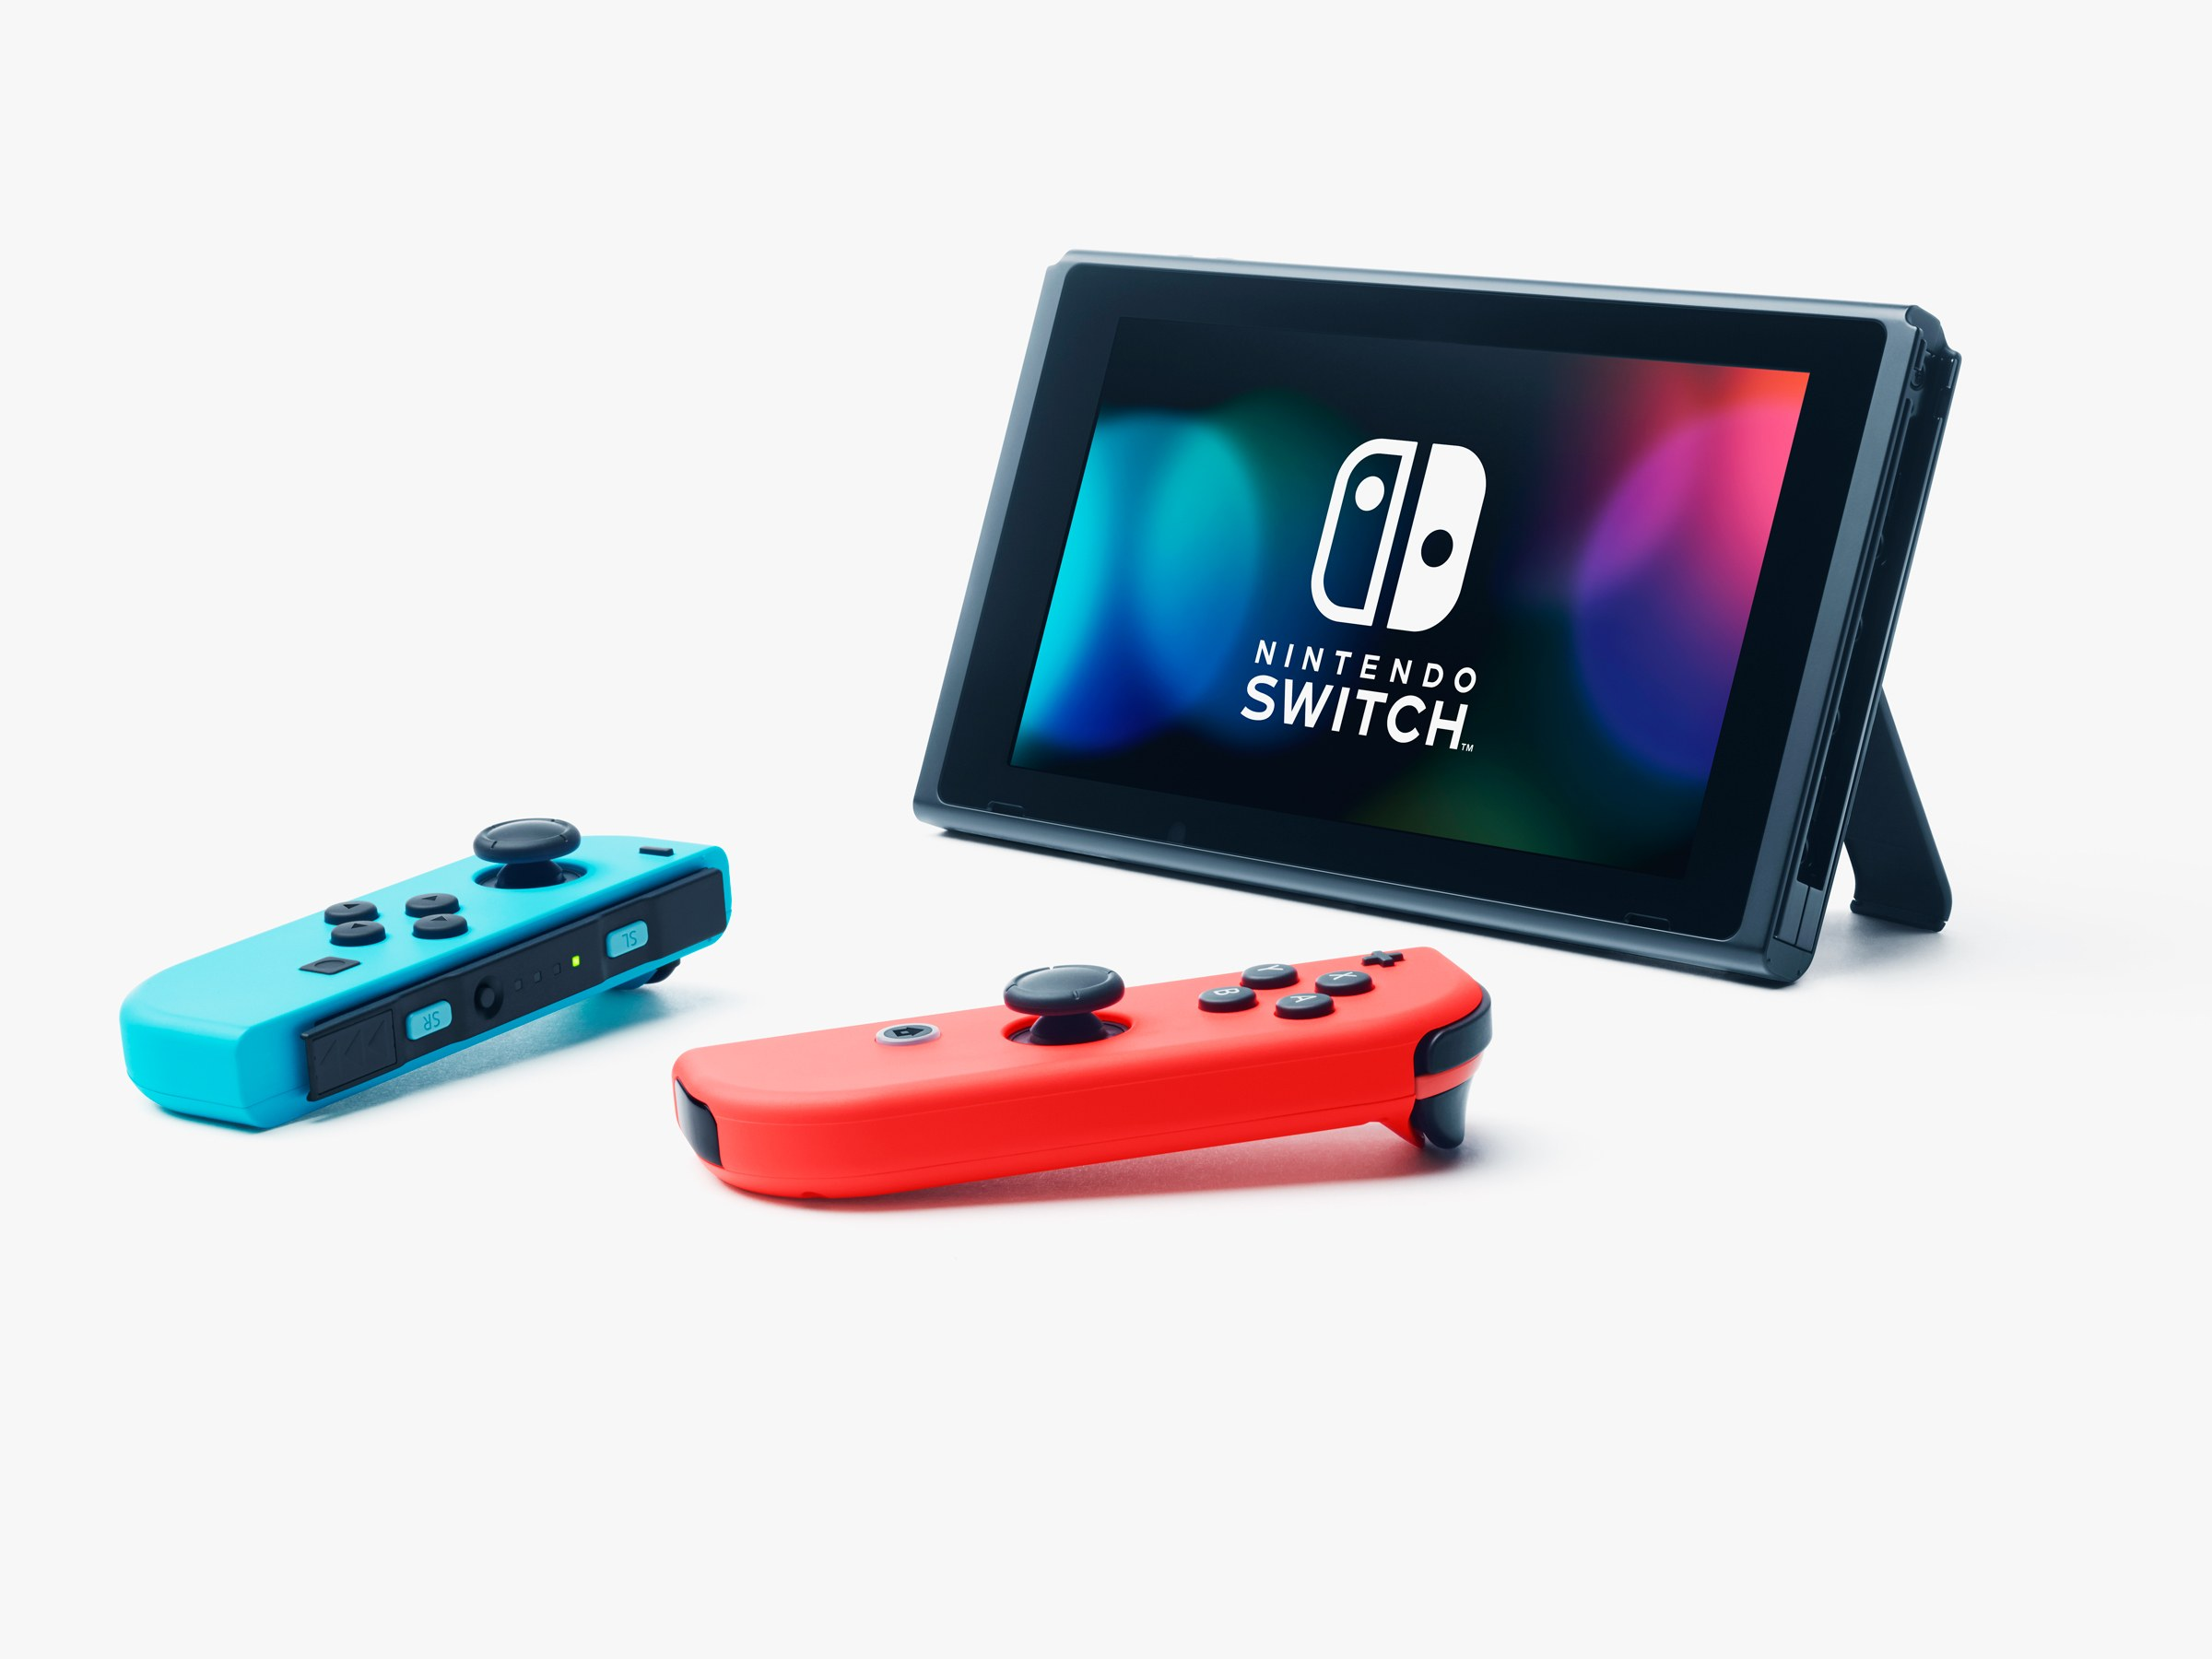 Nintendo president: No price cut needed to meet Switch sales goal